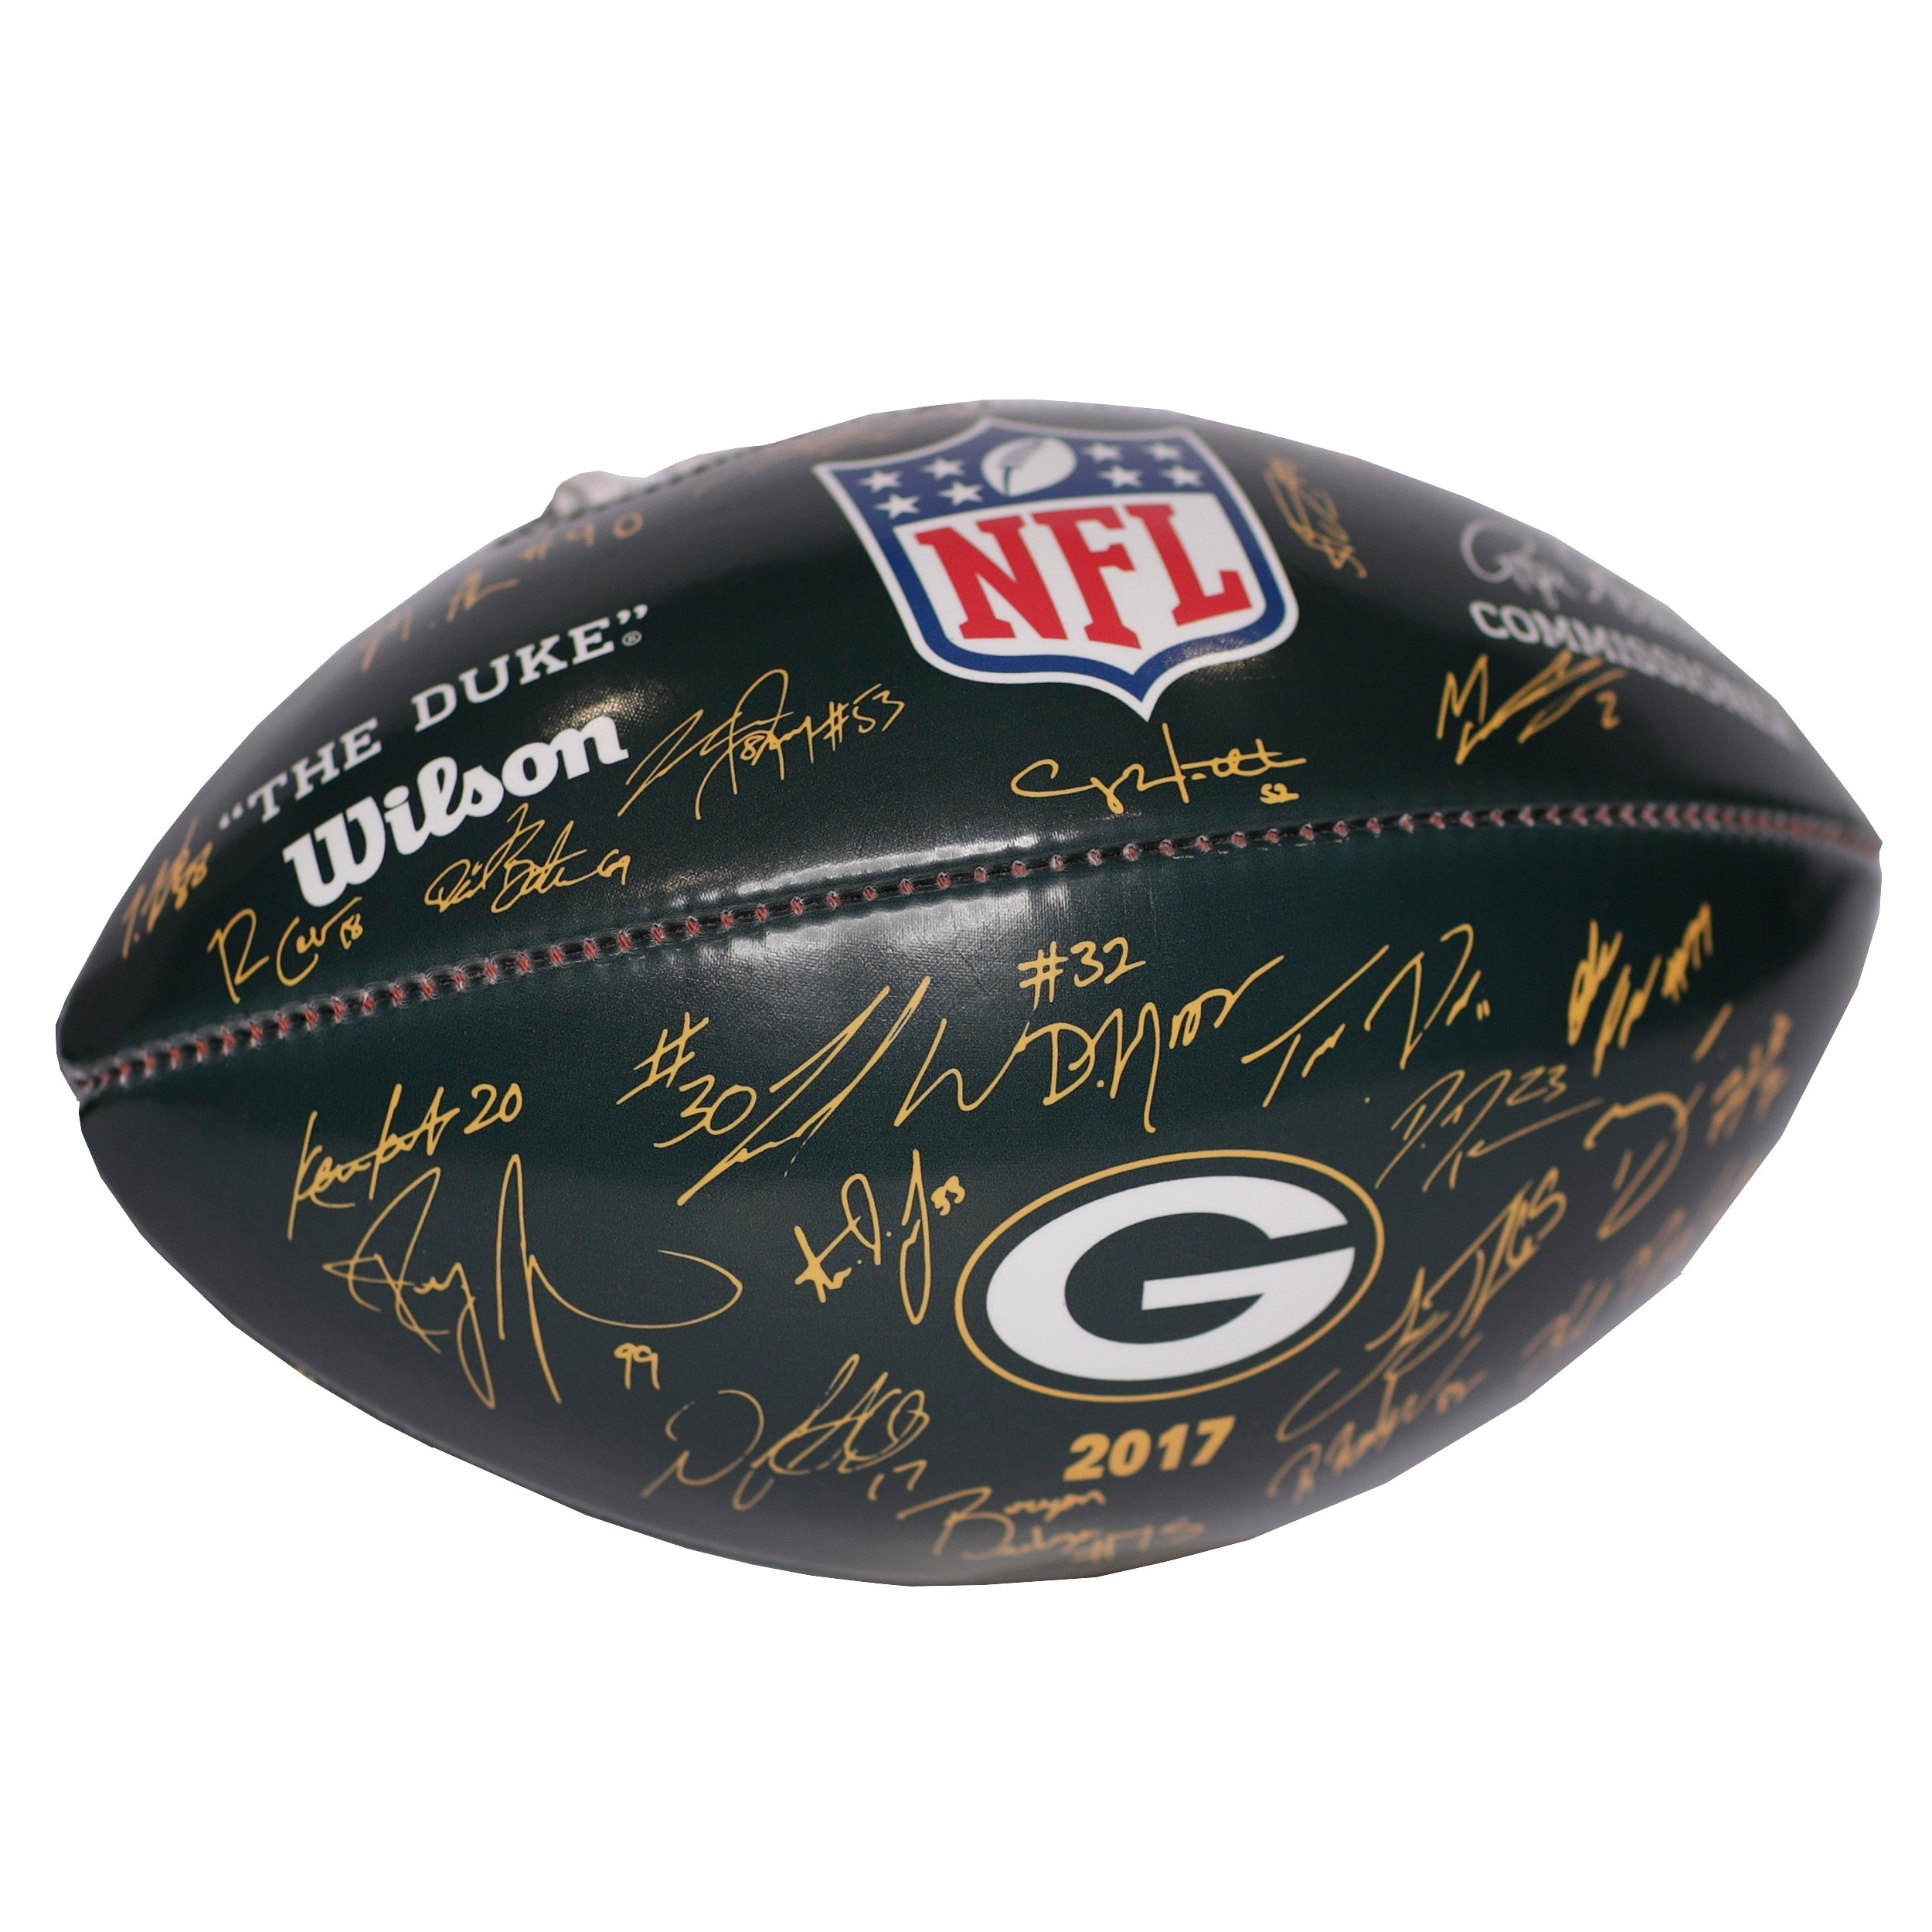 Green Bay Packers Footballs at the Packers Pro Shop